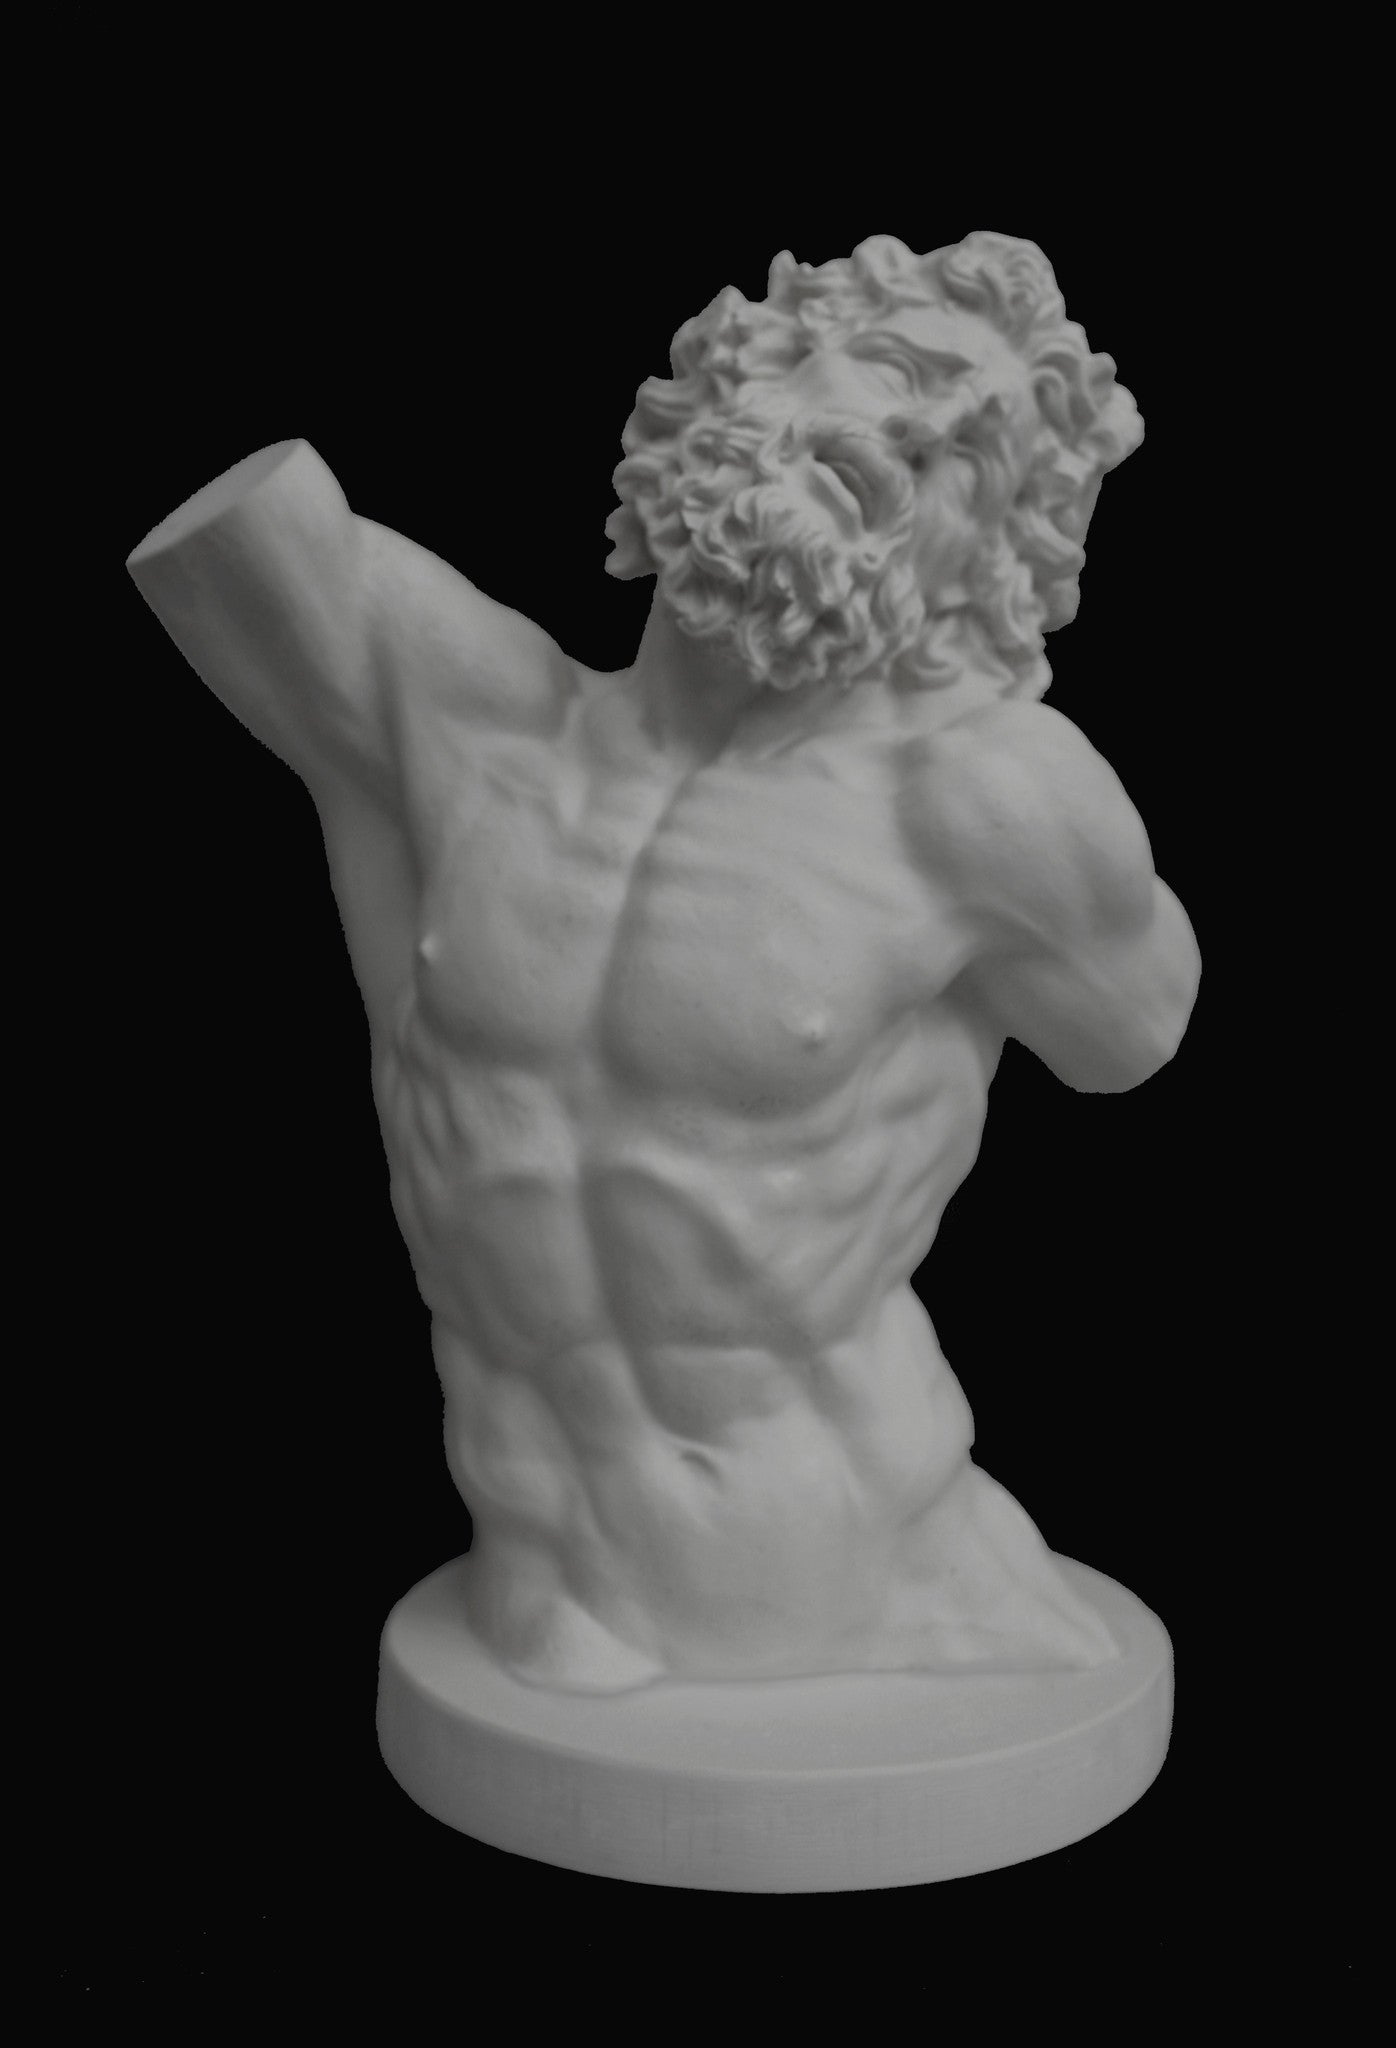 Laocoon Reduction Torso with Head - Item #778